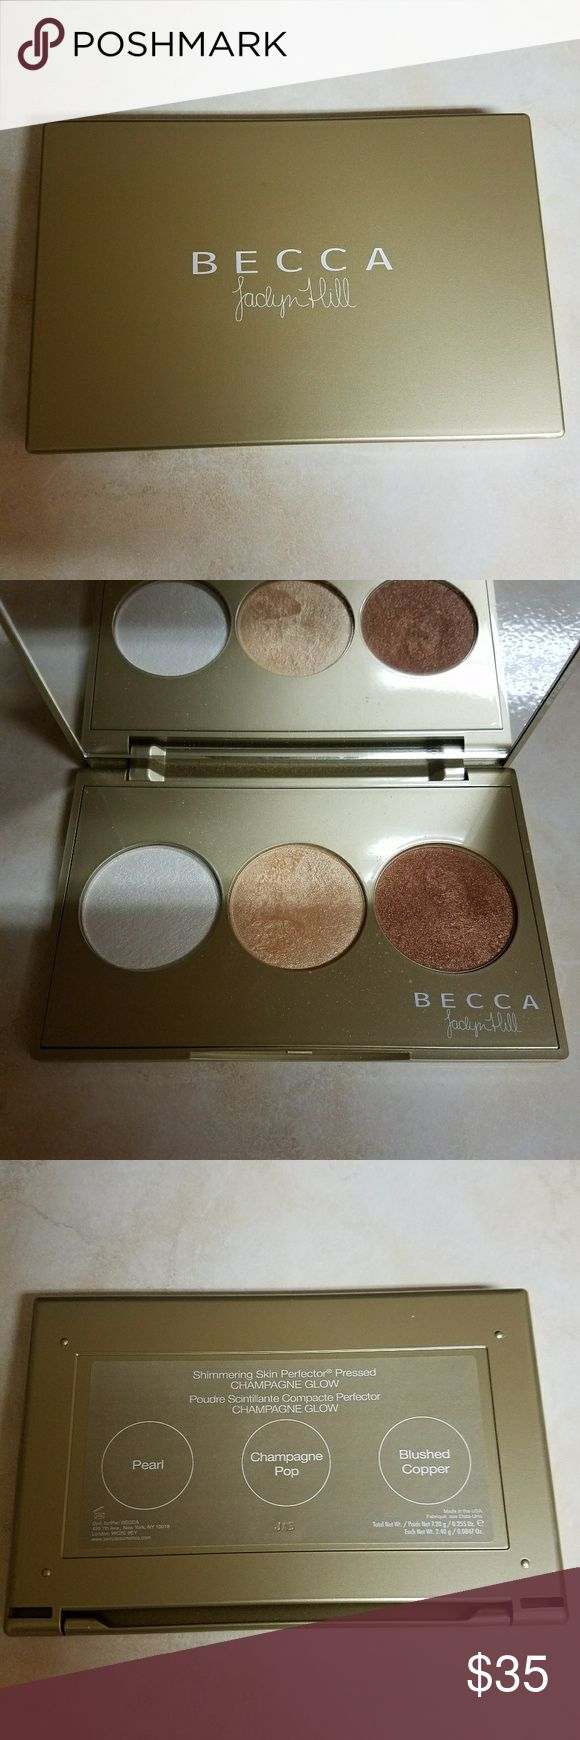 Becca X Jaclyn Hill highlight palette 2 beautiful Becca highlighters Jaclyn Hills limited edition Champagne Pop and original Opal 1 blush. Collectors Item for JH fans!  Very little product has been used. This palette has been properly sanitized. Former MUA and now I am a stay at home mama.. no girl needs this much makeup. This is from my personal collection not used on clients. BECCA Makeup Luminizer